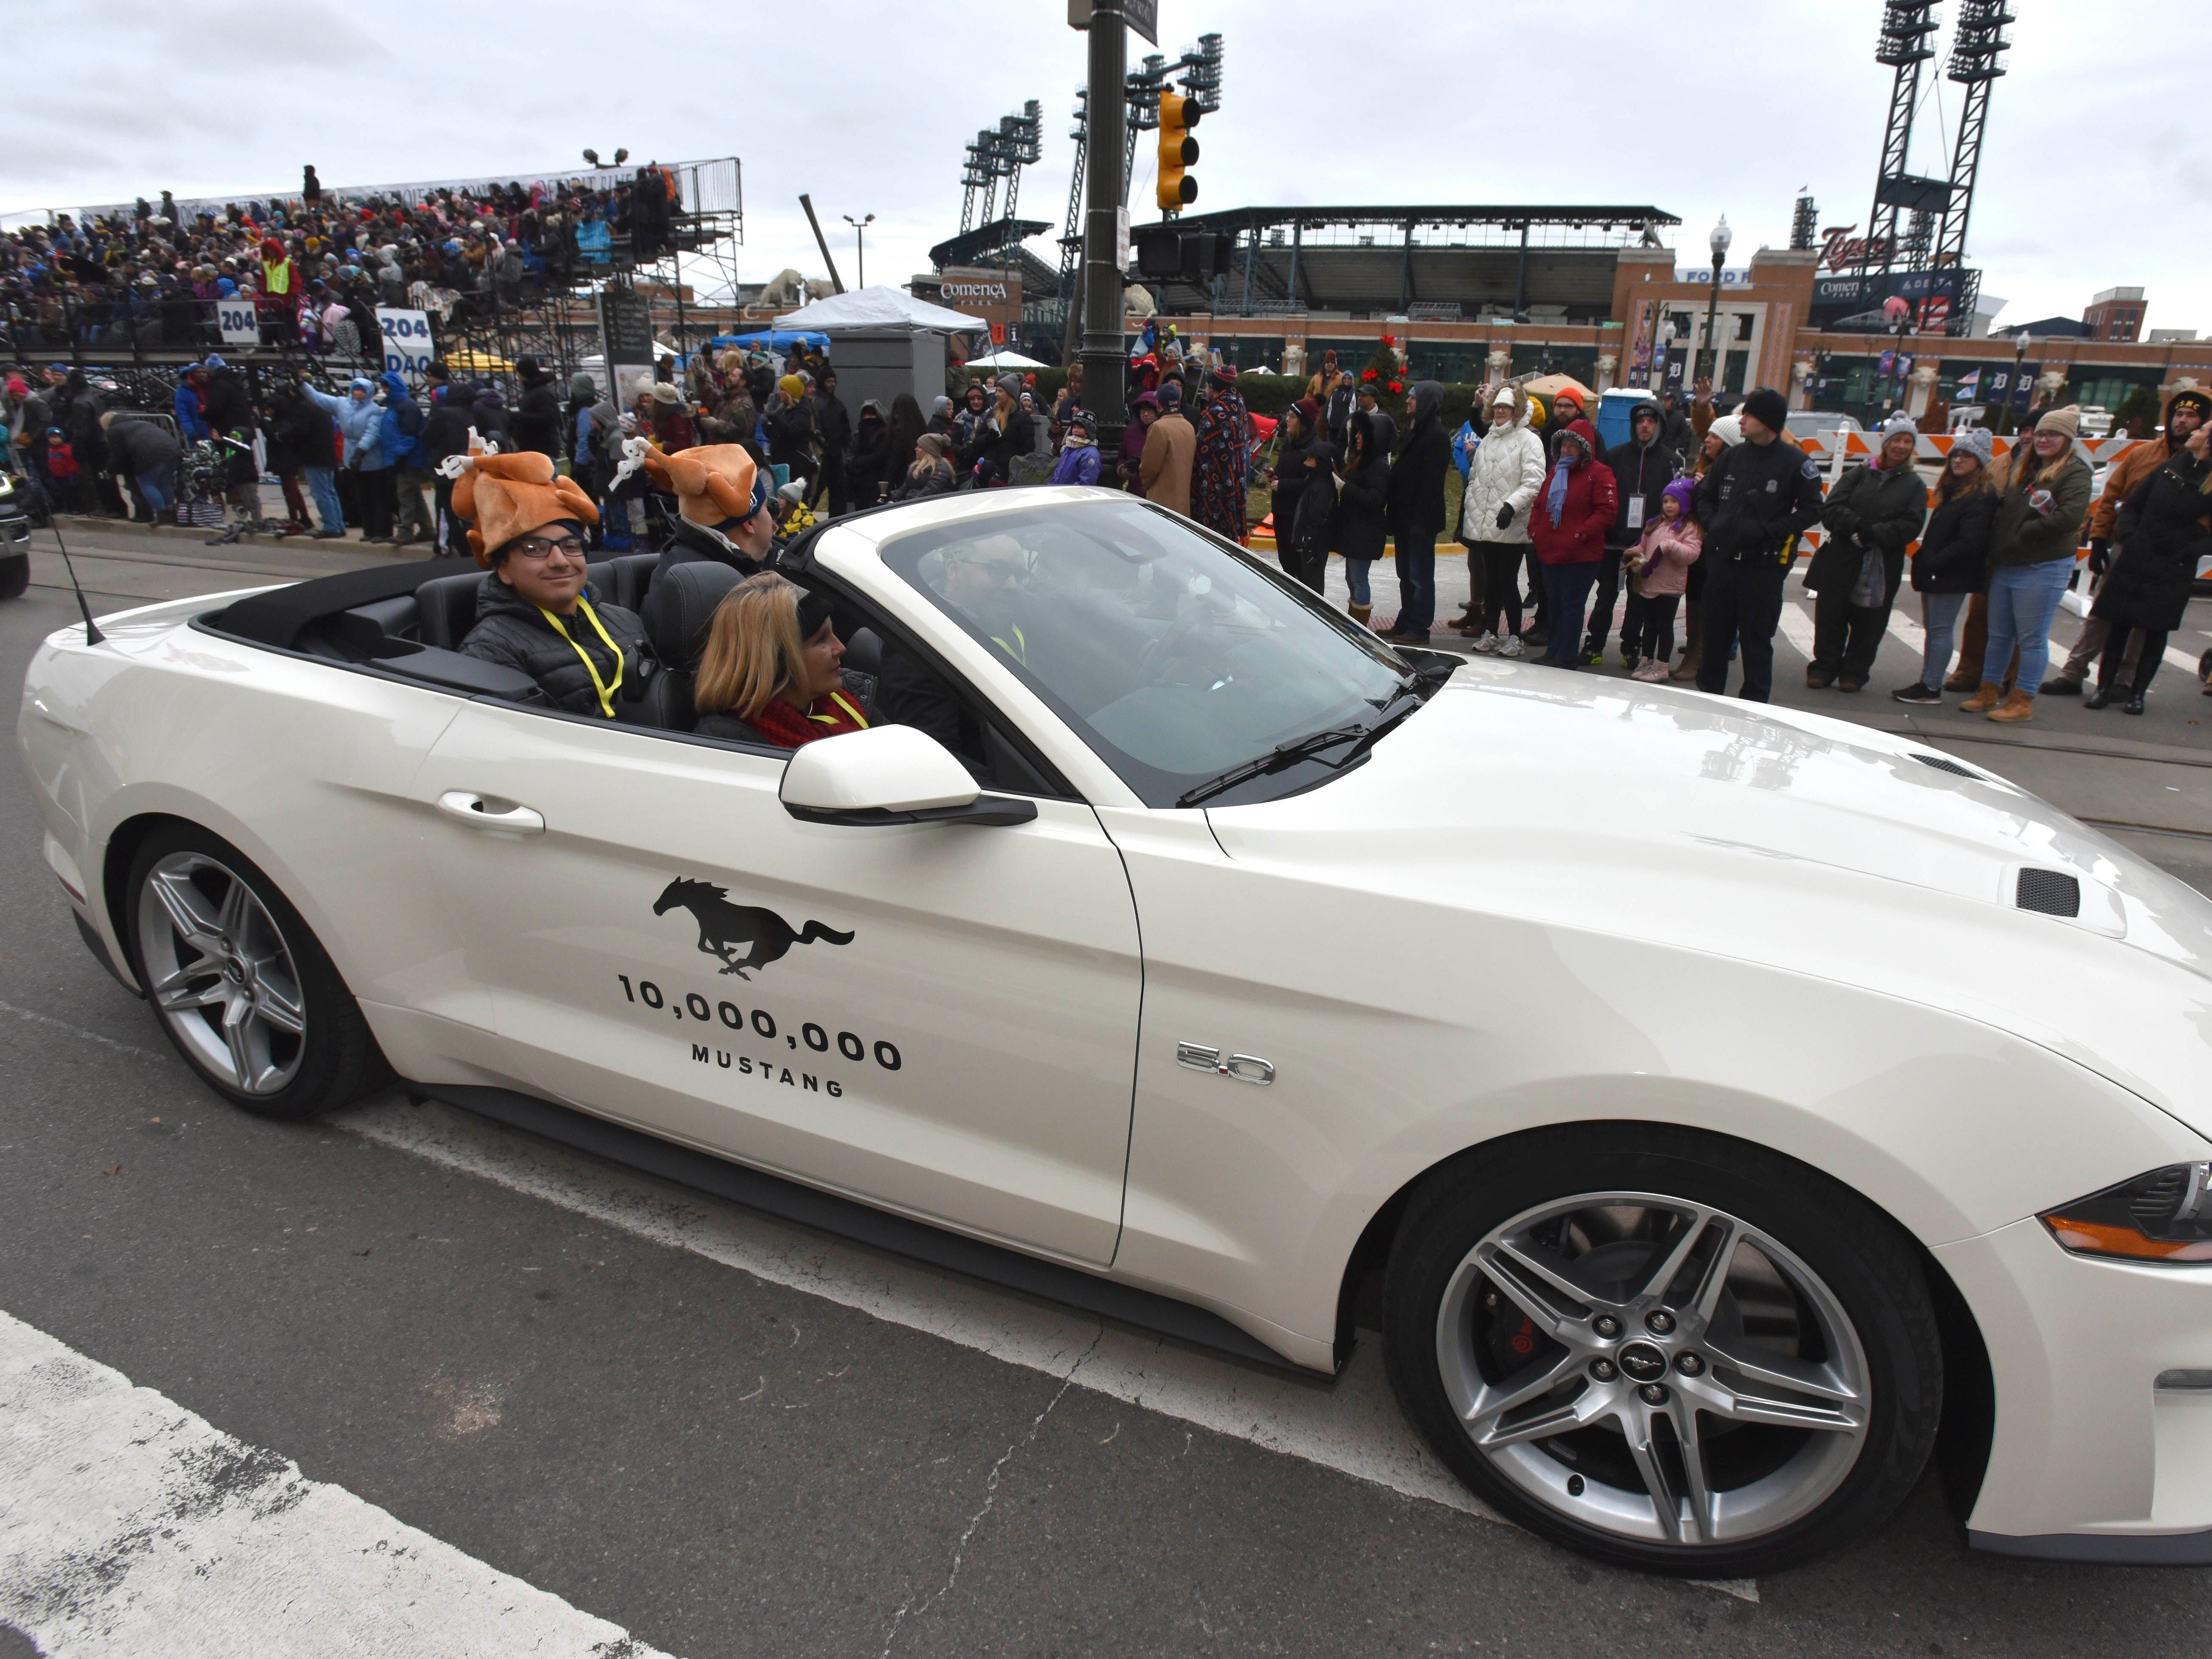 This is the 10 millionth Ford Mustang.